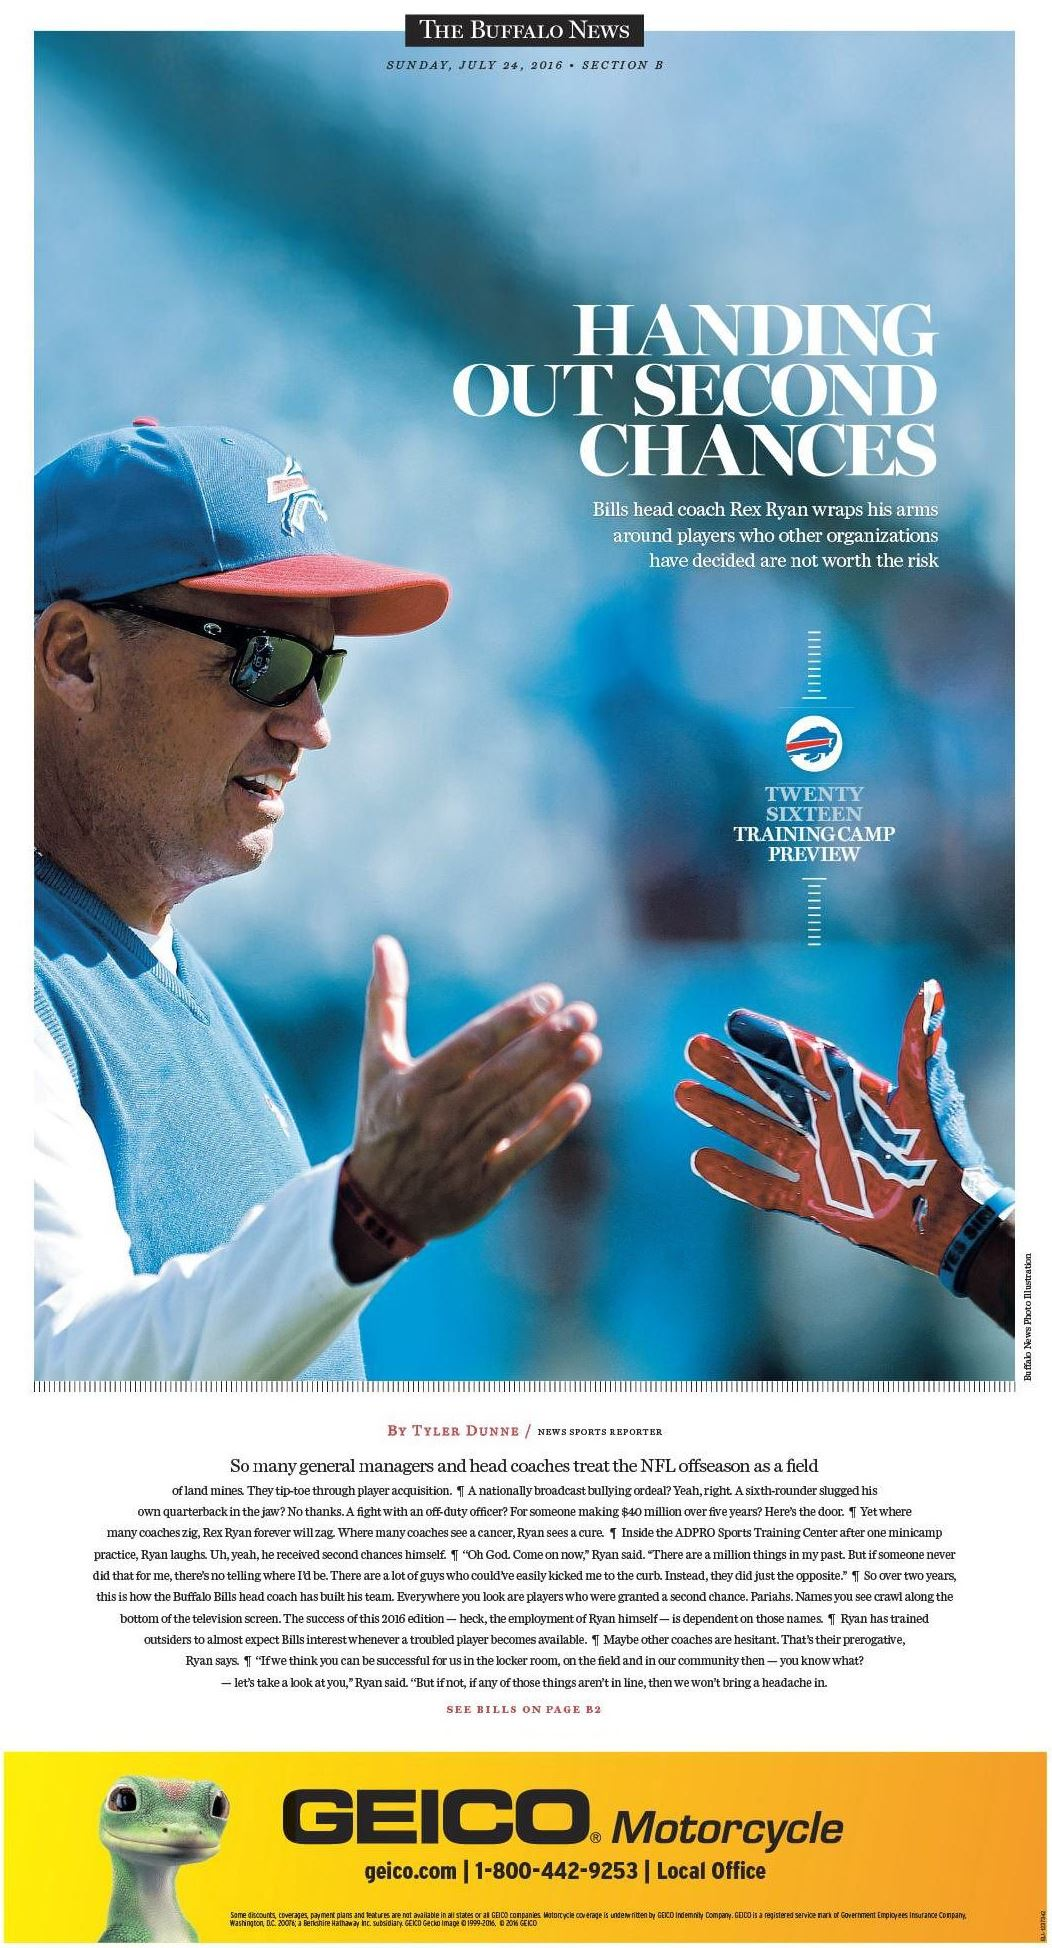 The cover of our special preview section on Sunday, July 24.